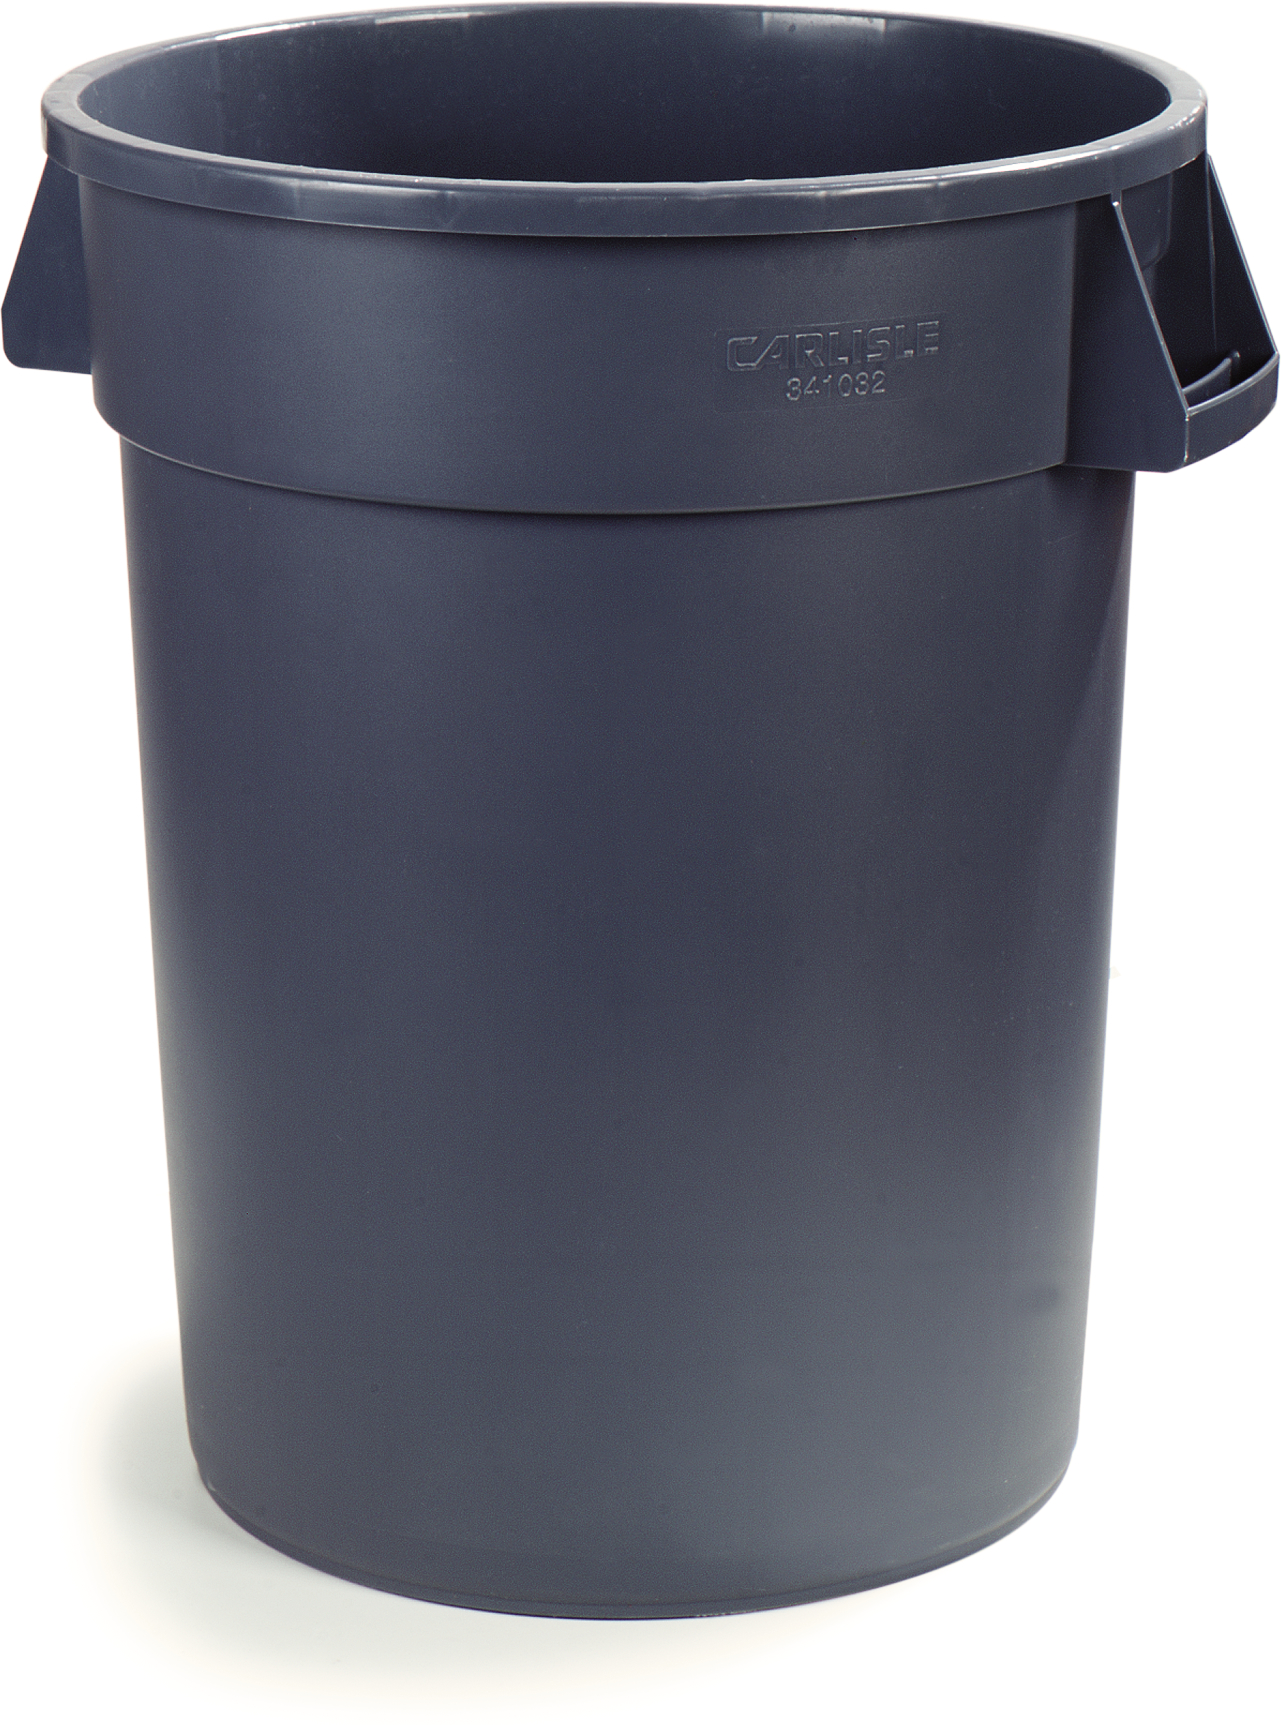 55G ROUND GRAY TRASH CAN BRUTE 2/CS